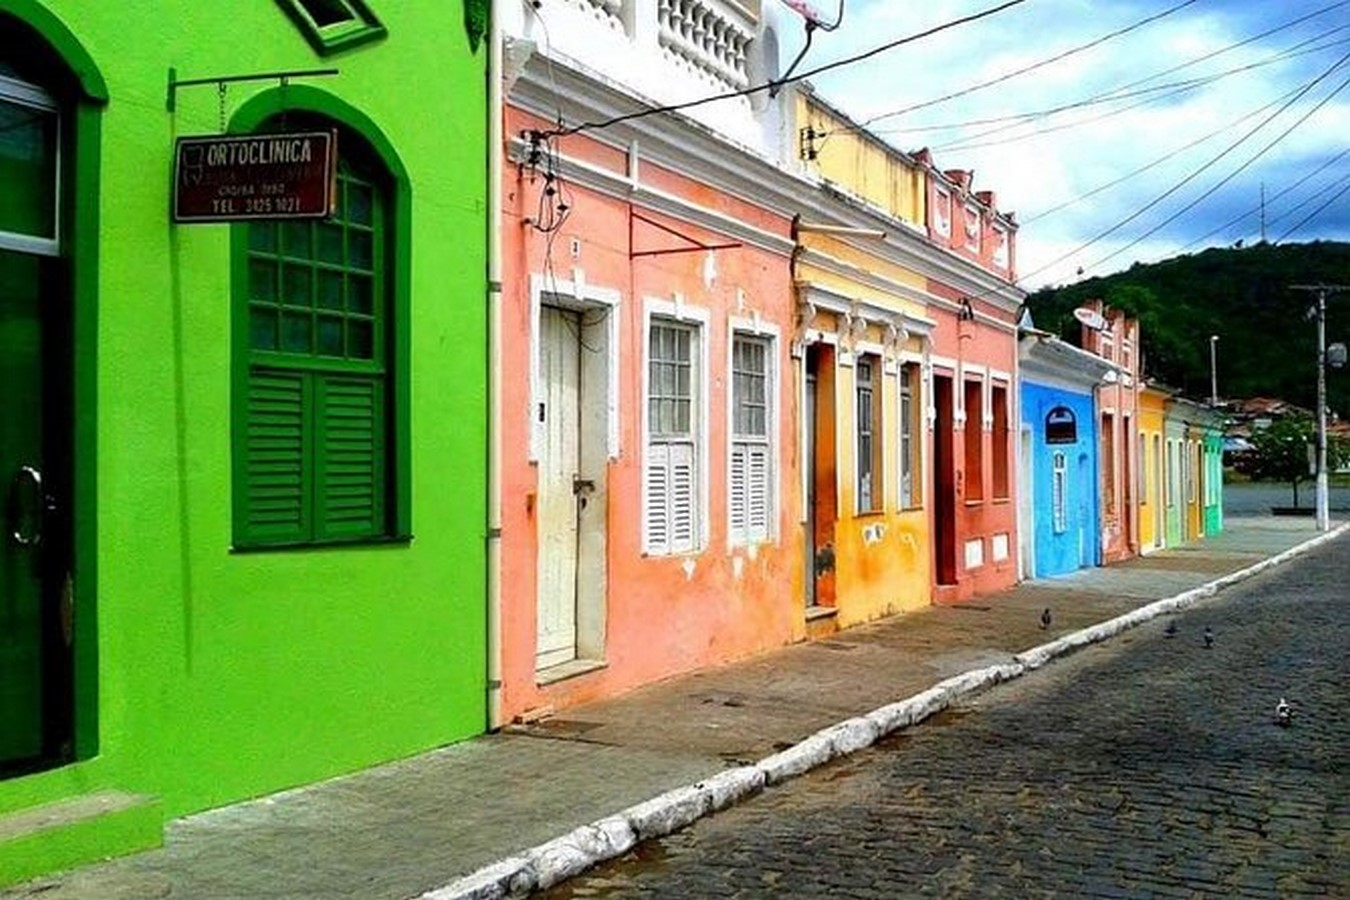 Architecture of Cities: Salvador- The Vibrant City - Sheet4